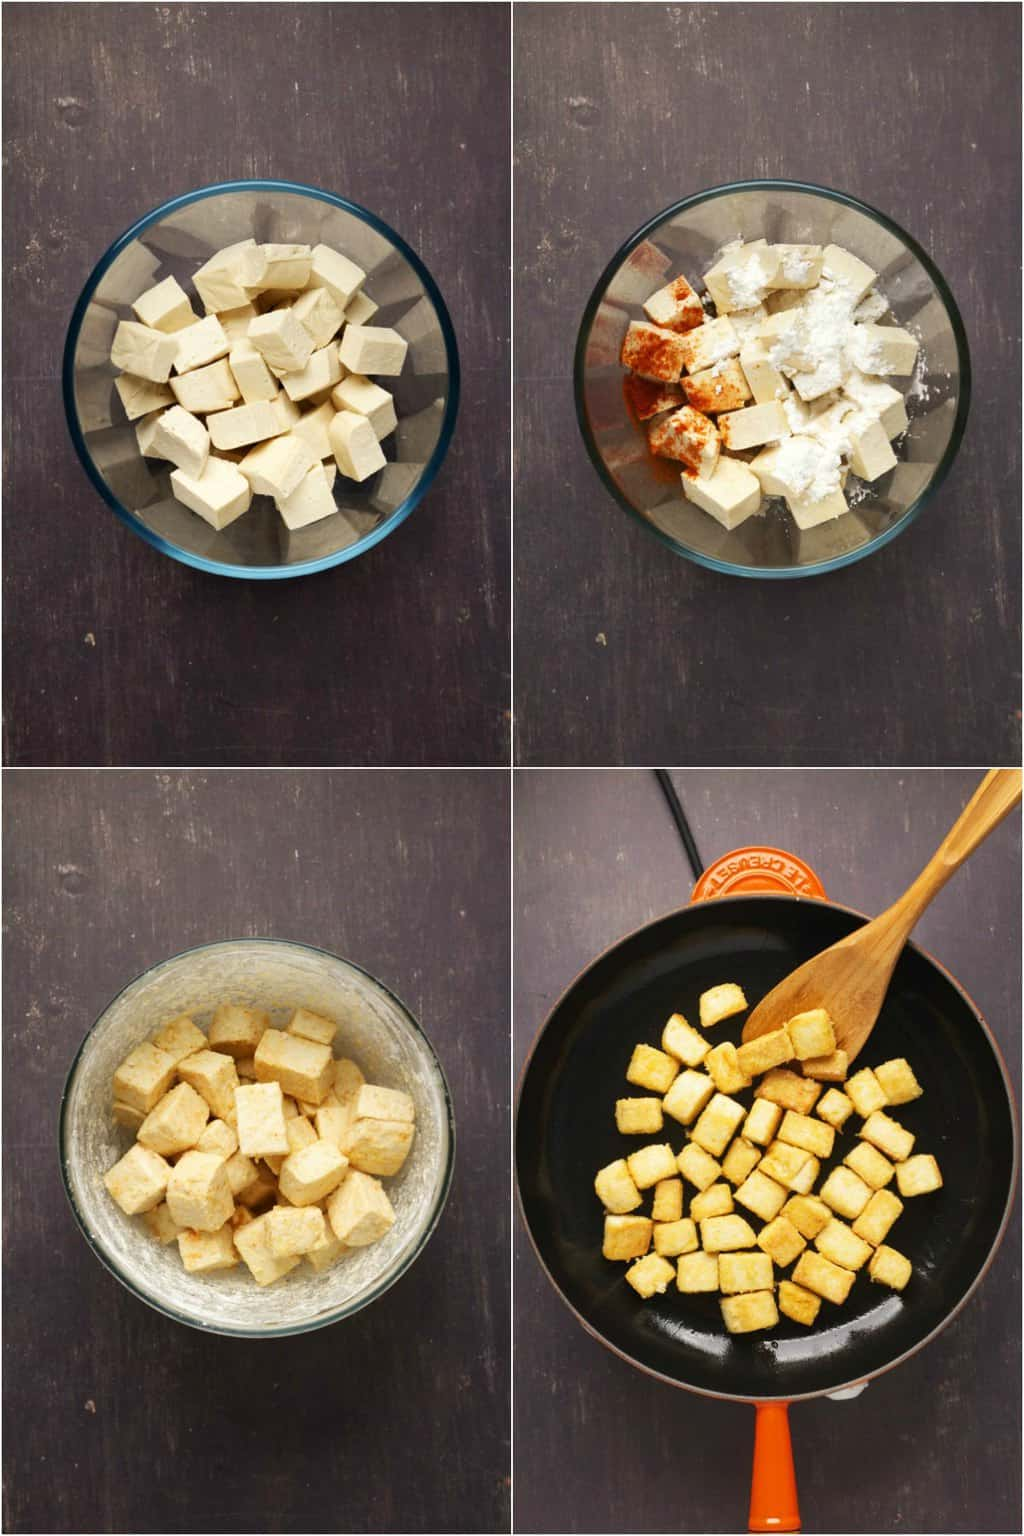 Step by step process photo collage of preparing the tofu for General Tso's tofu.